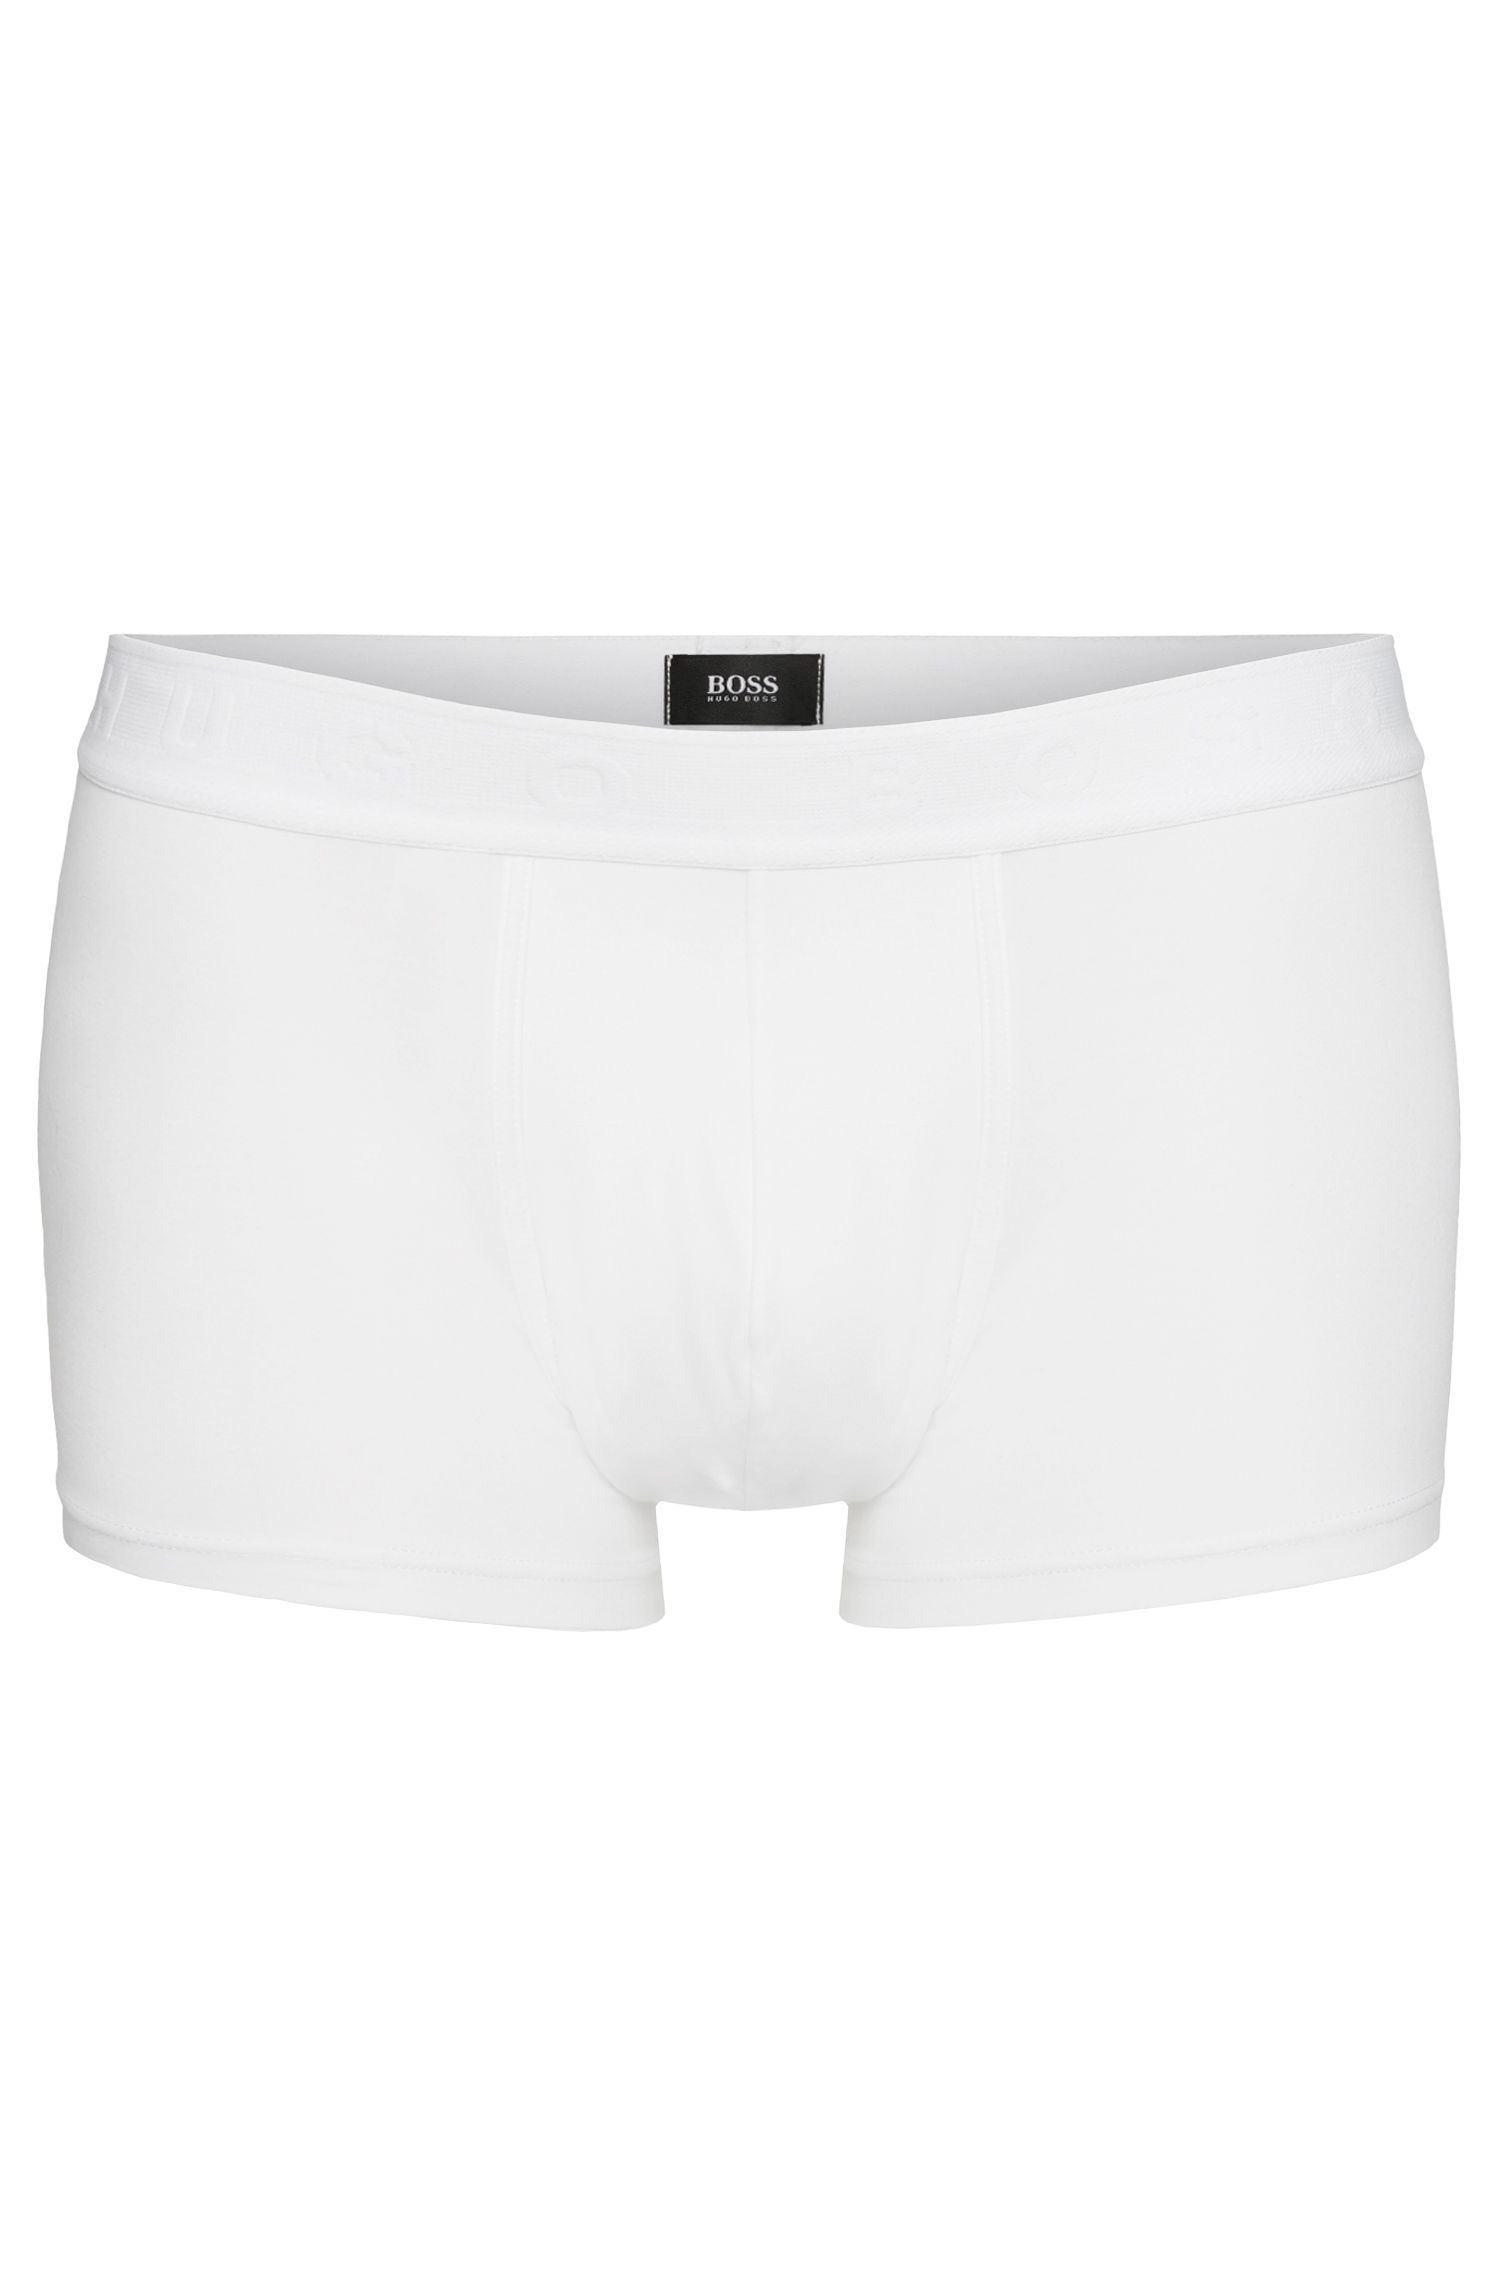 Regular-rise boxers in stretch jersey